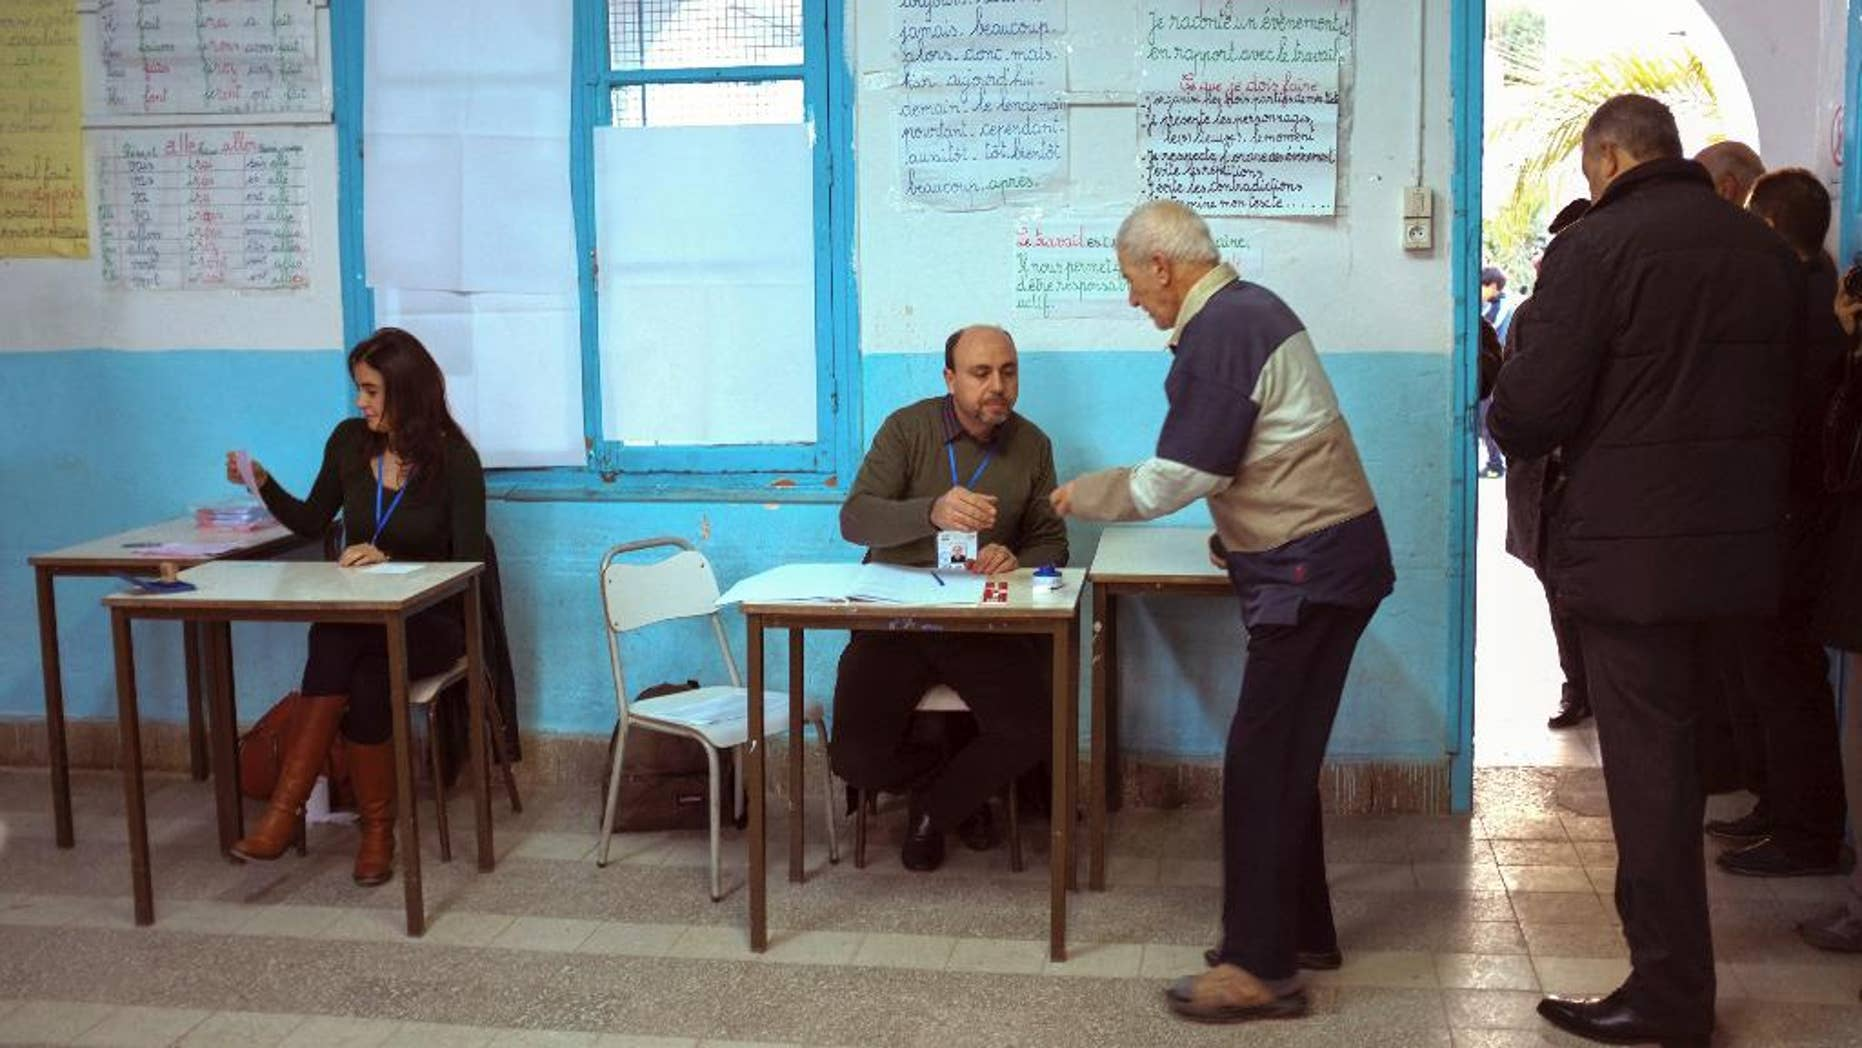 Tunisians check voters' ID prior to cast their ballots in a polling station in Tunis, Tunisia, Sunday, Dec. 21, 2014.  Tunisians voted on Sunday for a new president in a runoff between a symbol of the country's previous regimes and a veteran human rights activist that came to power after the revolution of 2011.(AP Photo/Ilyess Osmane)